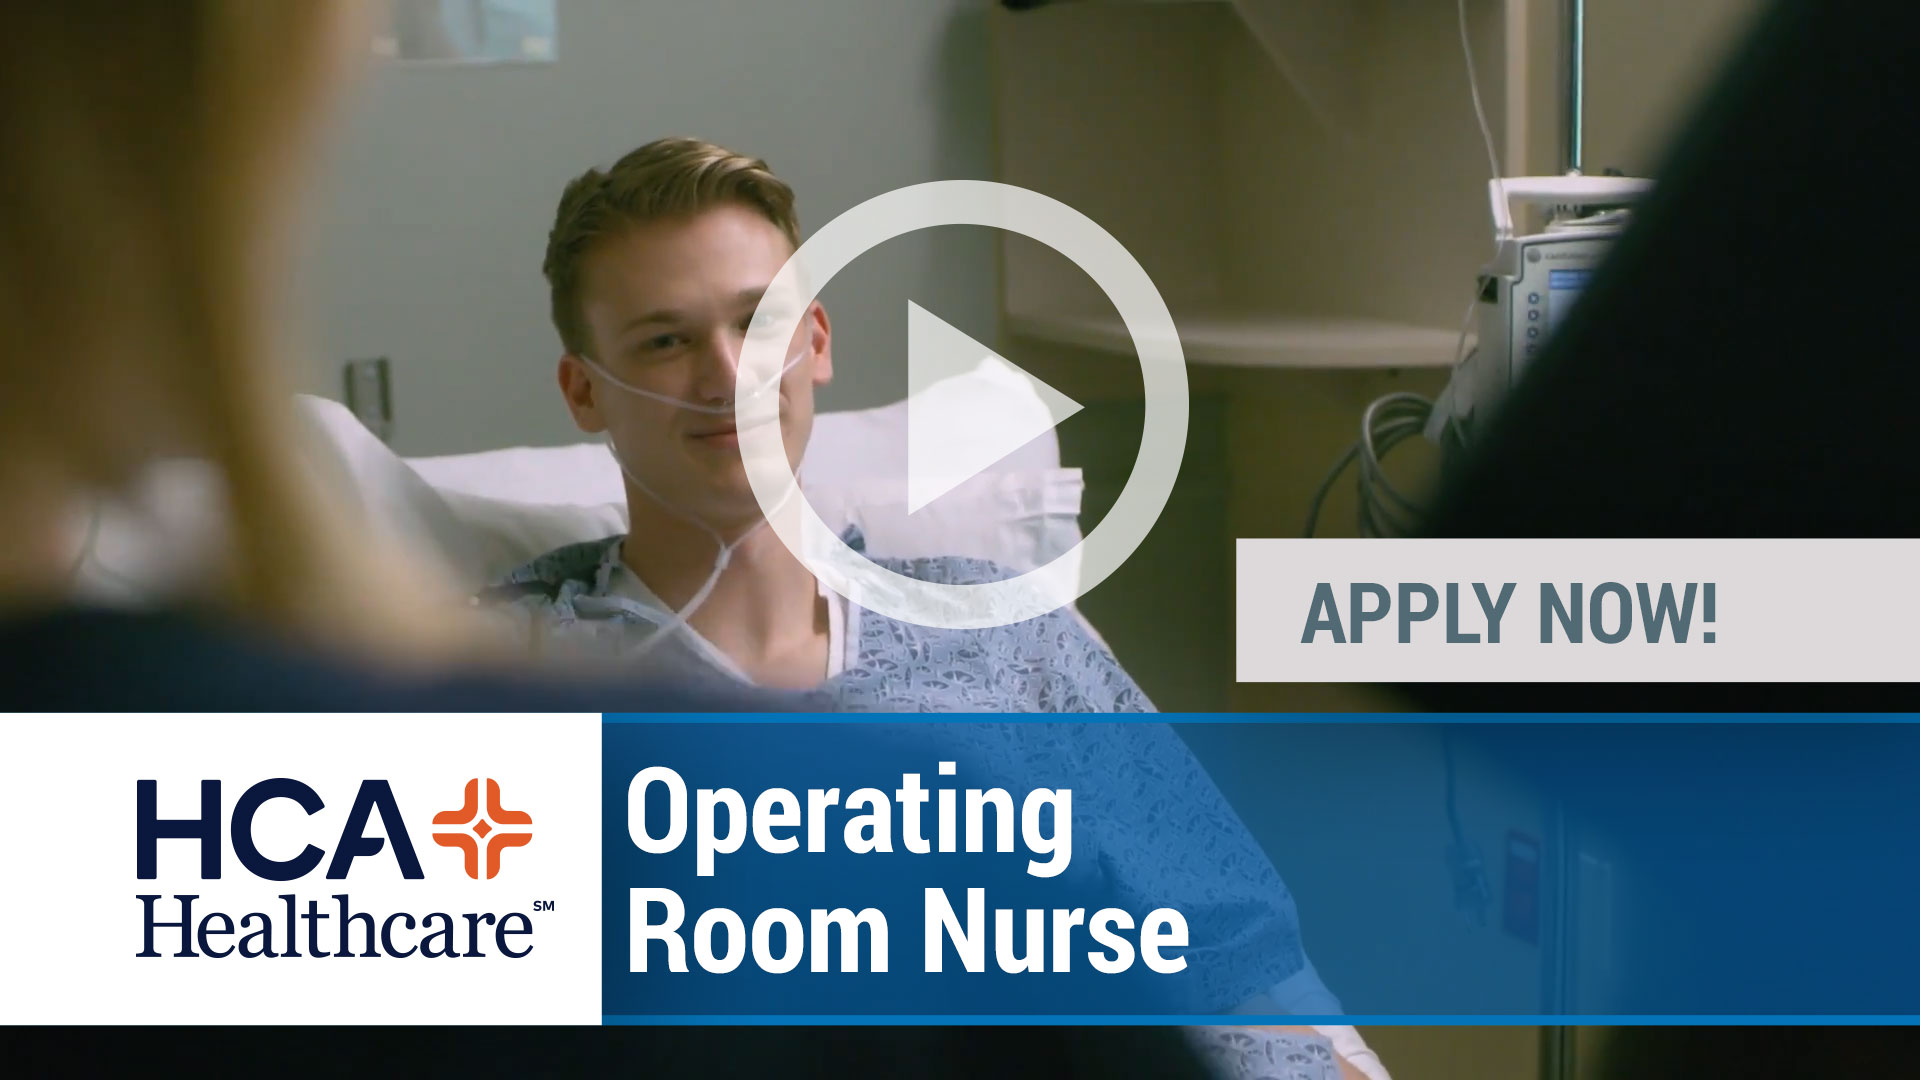 Watch our careers video for available job opening Operating Room Nurse in Webster, Texas